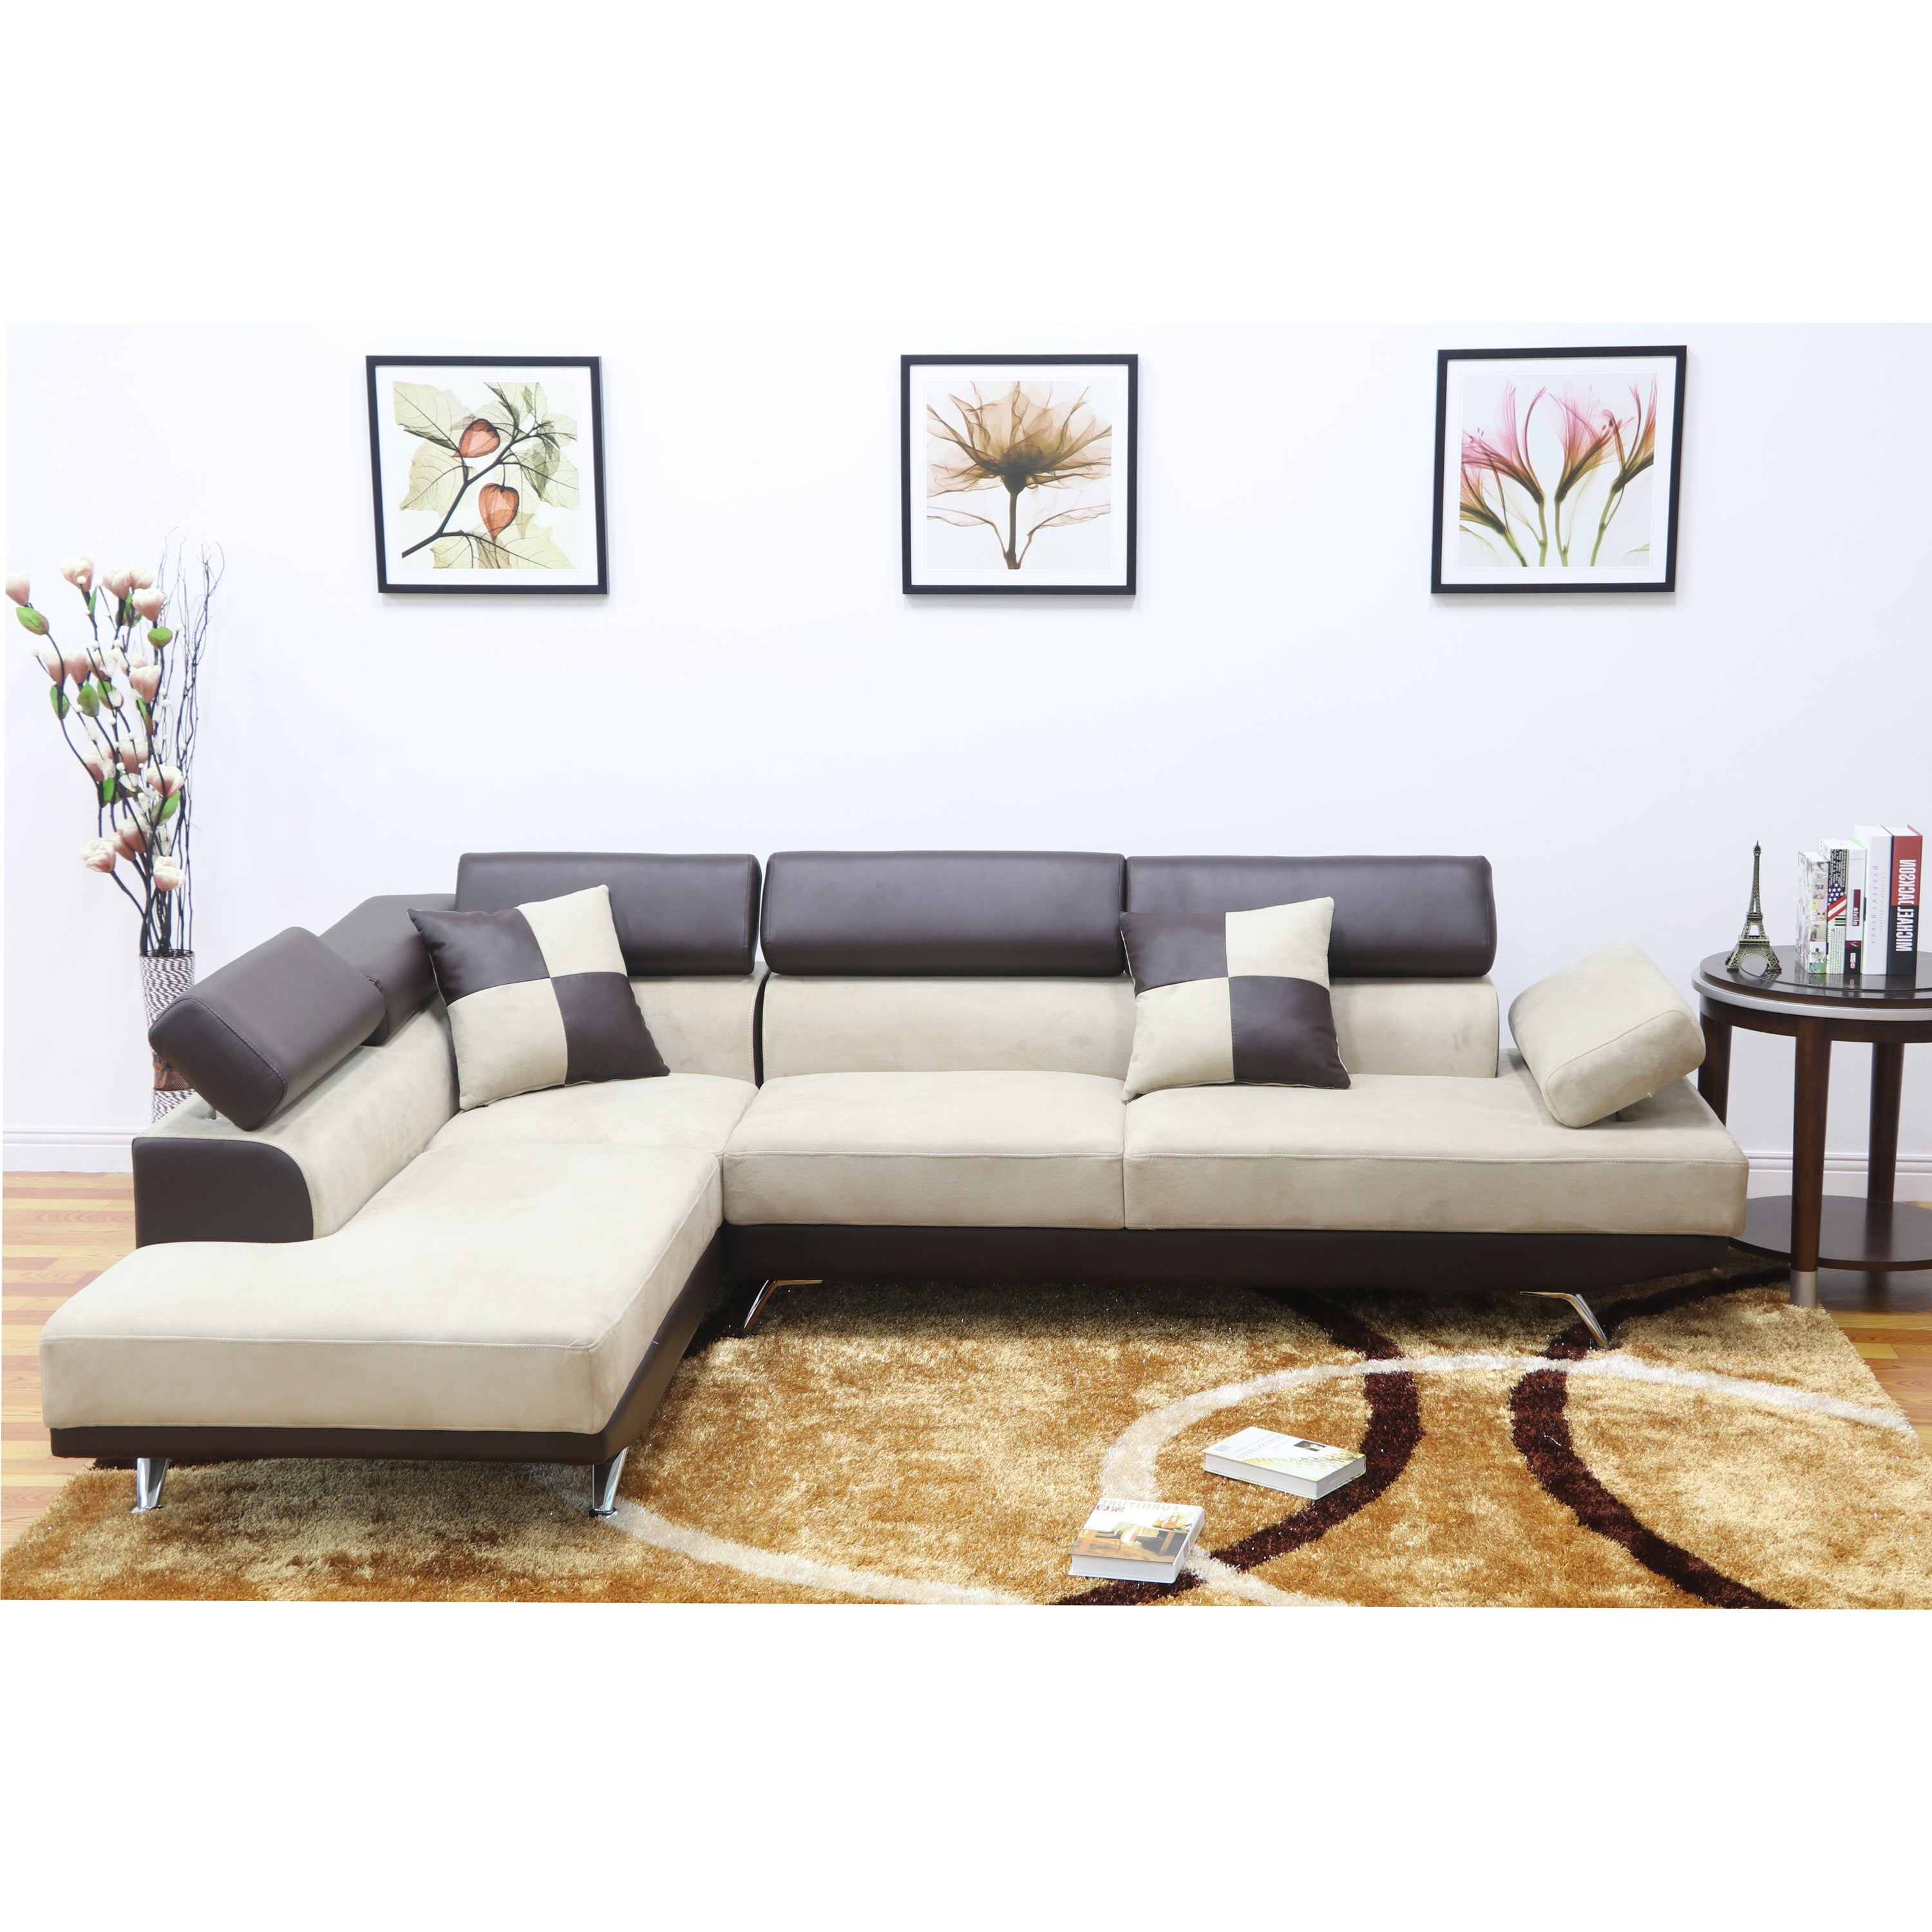 Shop PDAE Whitley Modern Left-Facing Chaise Sectional Sofa - Free ...